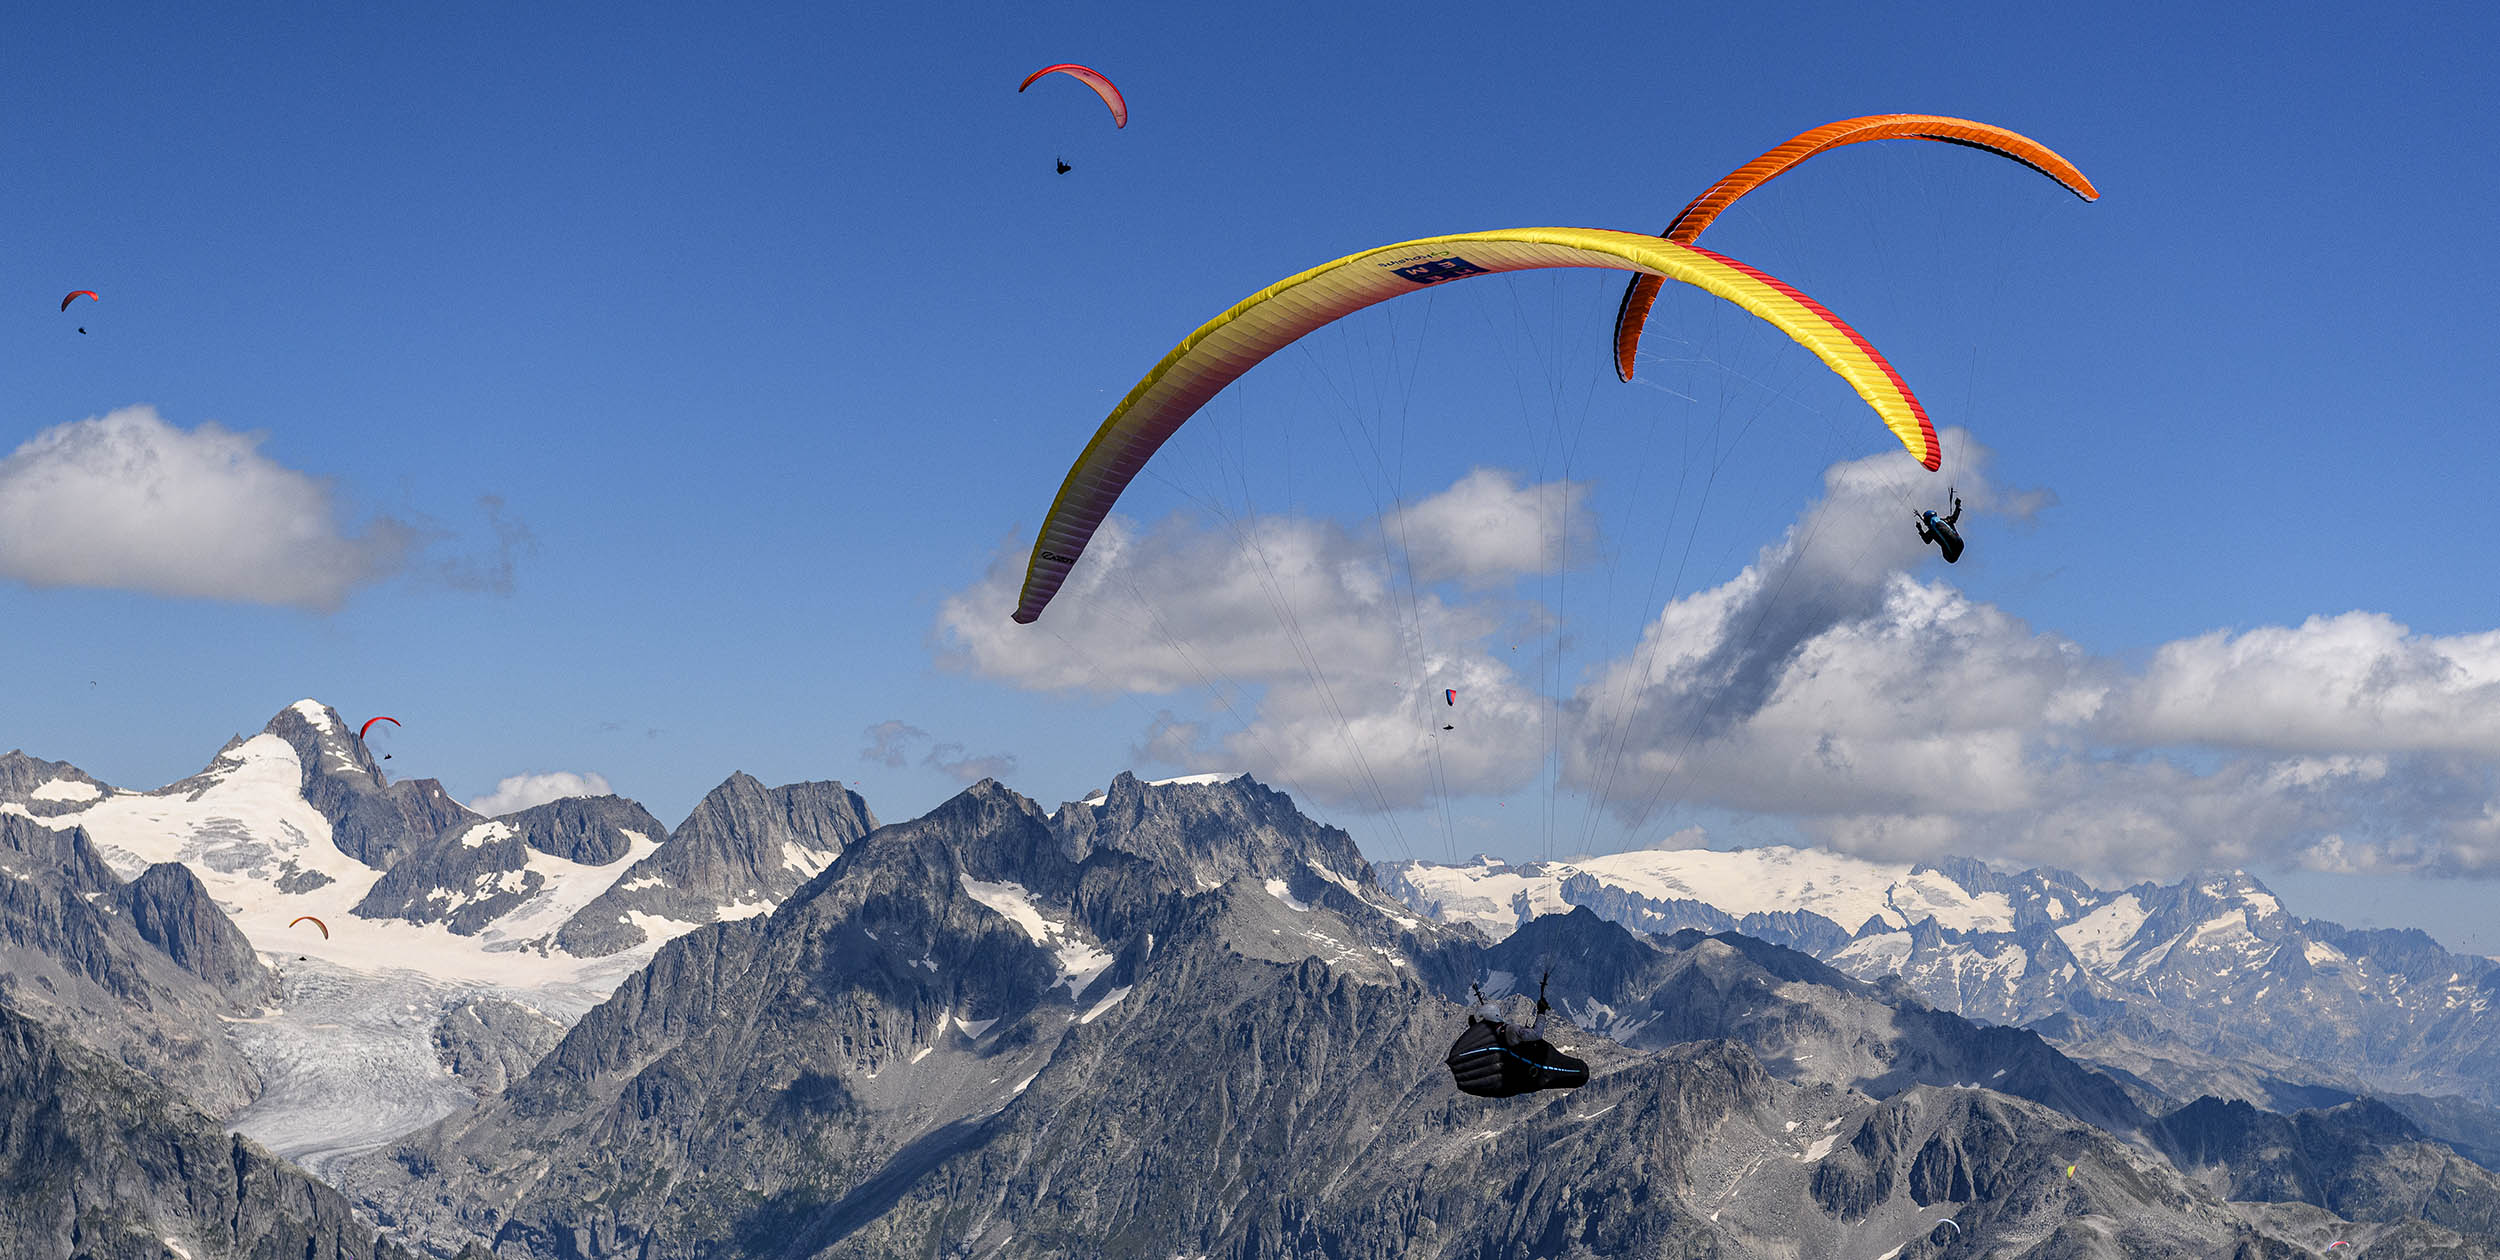 Thermalling at the Swiss Paragliding Open 2020. Photo: Andy Busslinger